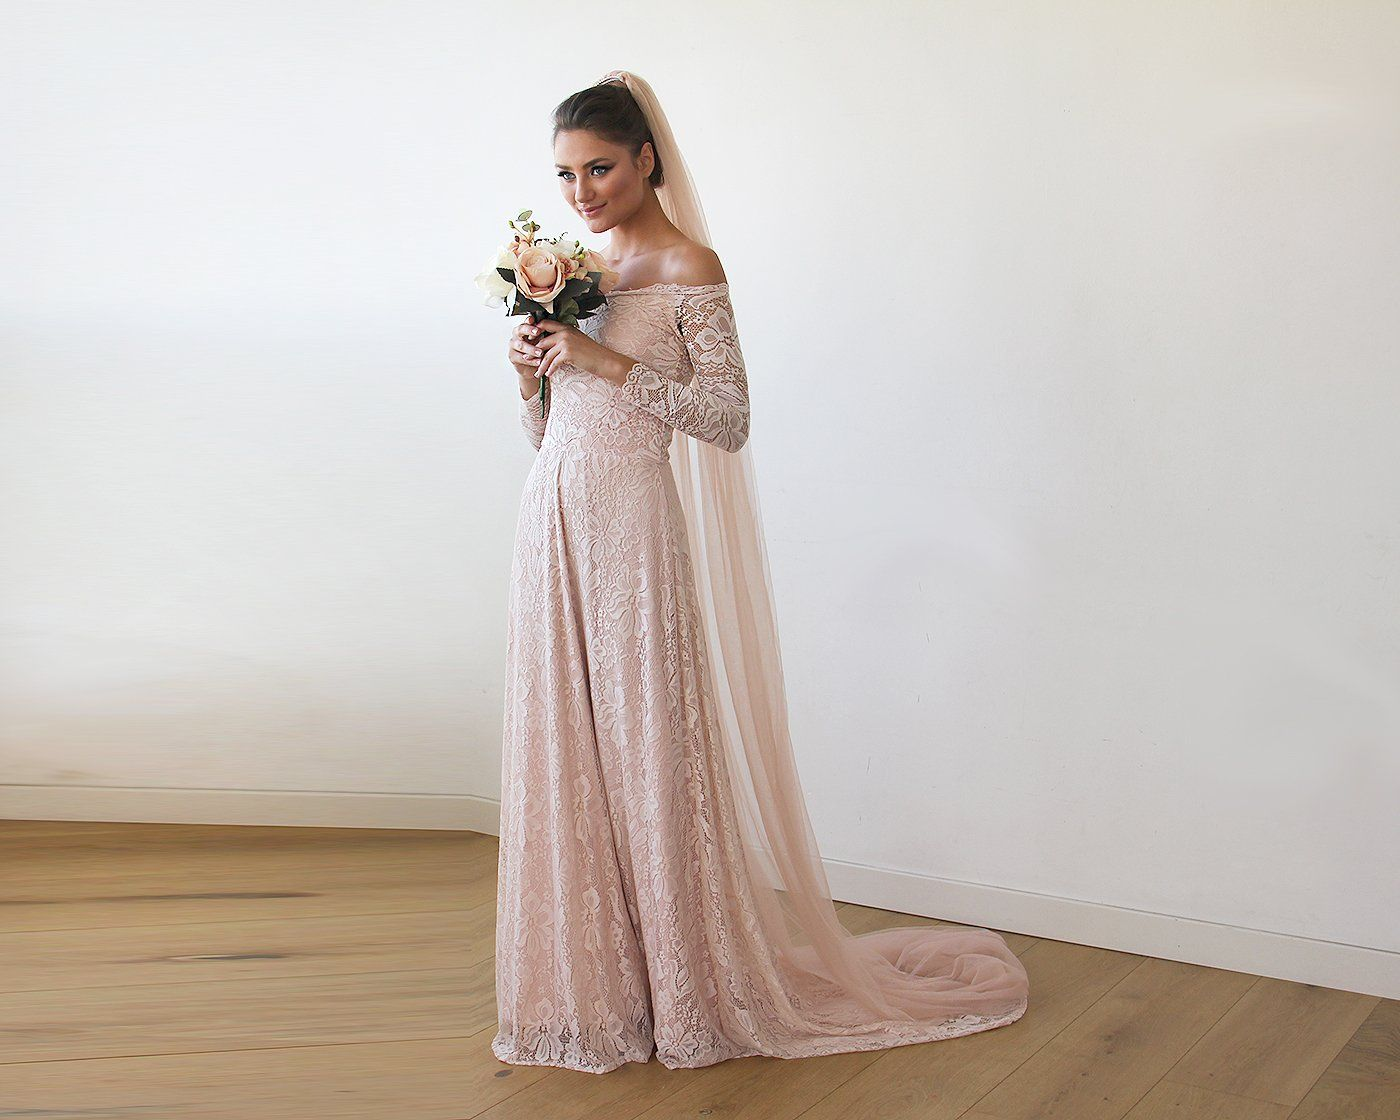 Baby Pink Off-The-Shoulder Floral Lace Long Sleeve Gown With Train 1148 - Blushfashion